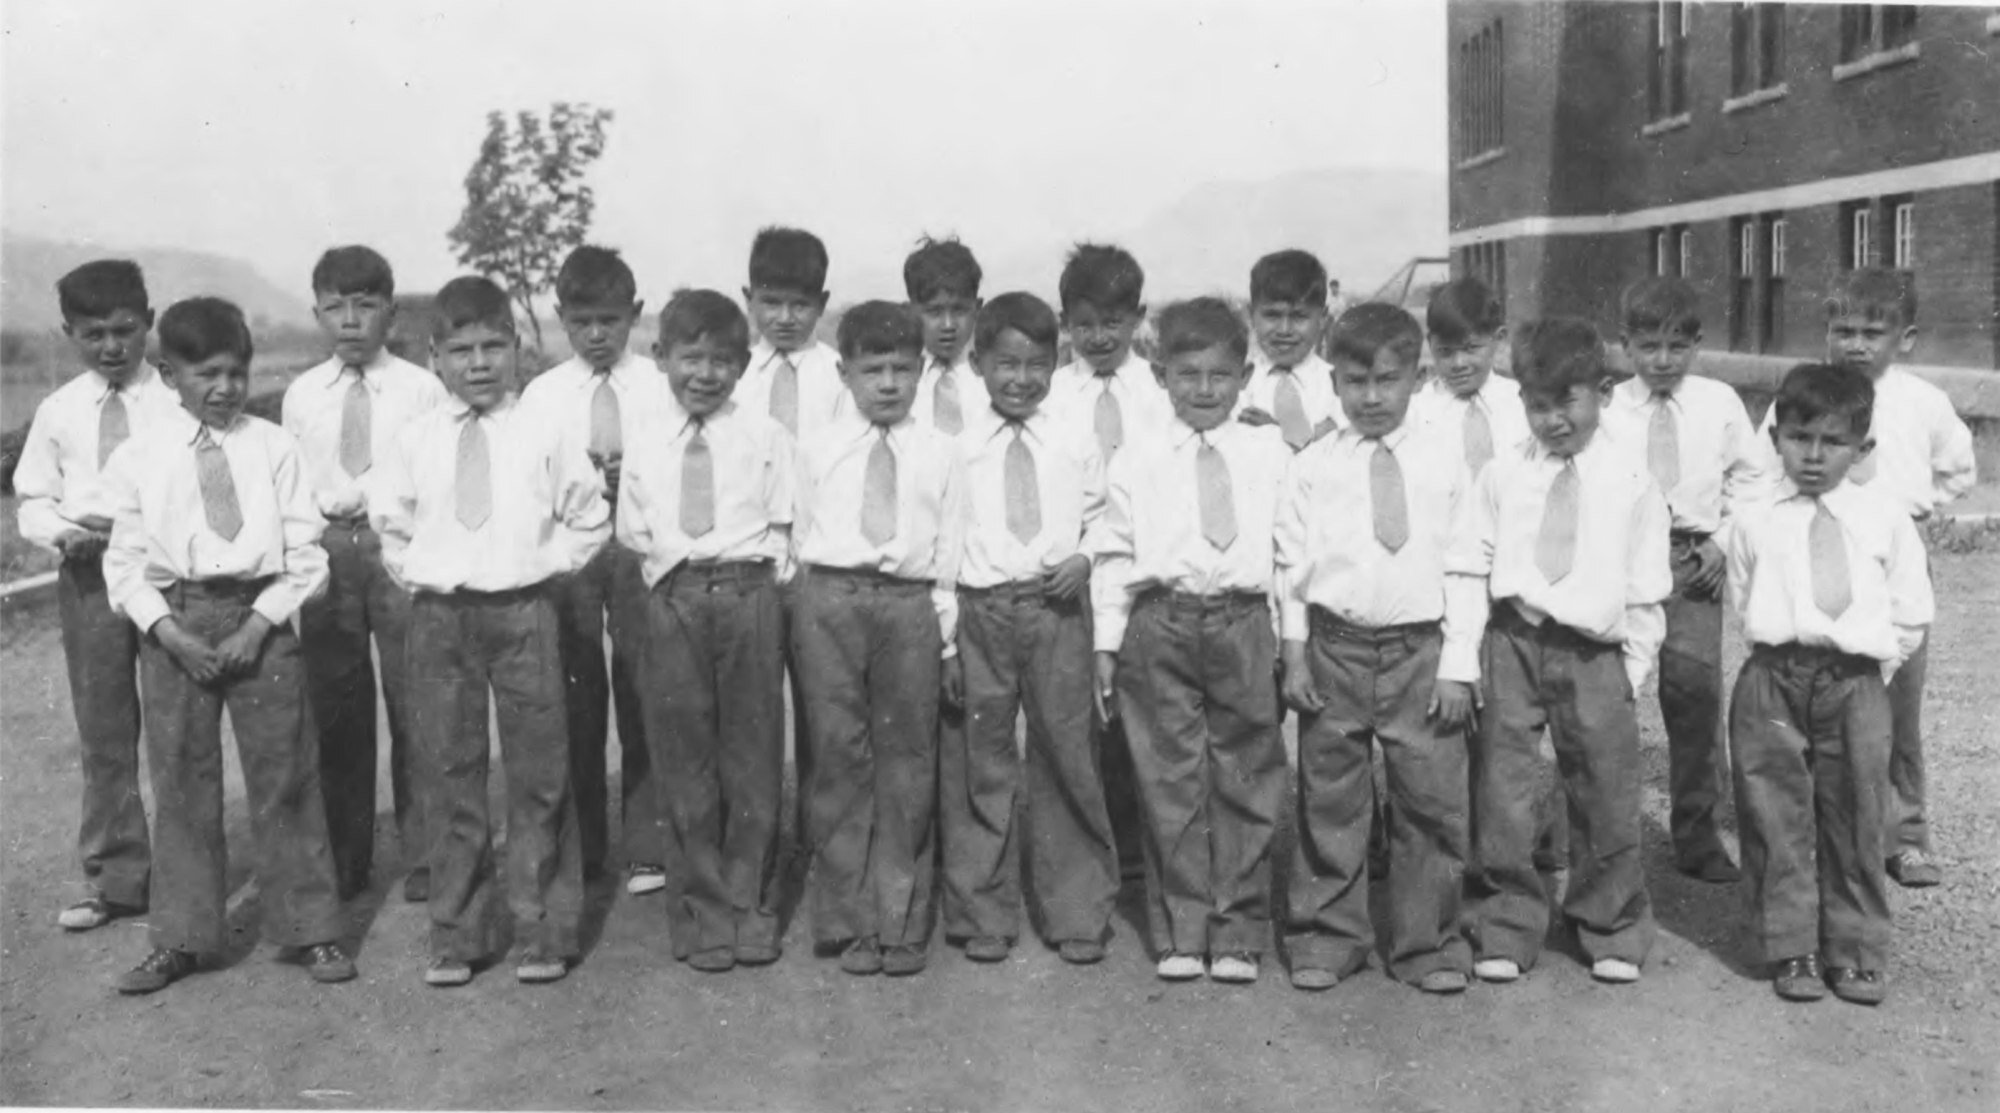 A photo made available by the National Centre for Truth and Reconciliation at the University of Manitoba shows children at the Kamloops Indian Residential School in British Columbia, Canada, in 1944. A mass grave has been located at the site of the school that contains the bodies of 215 children whose deaths went undocumented. Photo: EPA